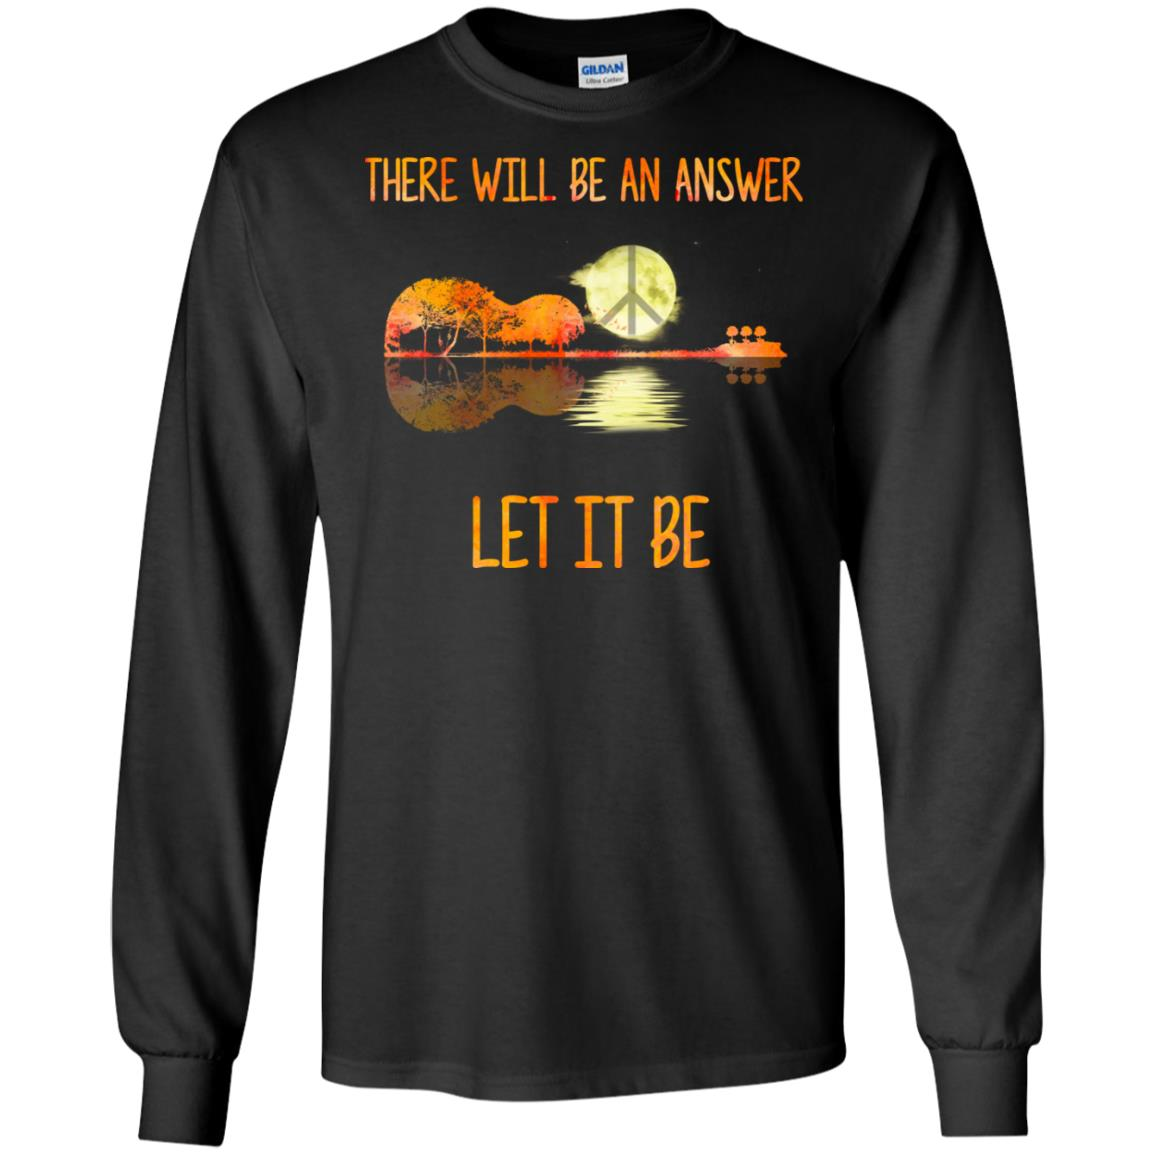 76b4caf84 Guitar there will be an answer let it be t-shirt, hoodie, long ...